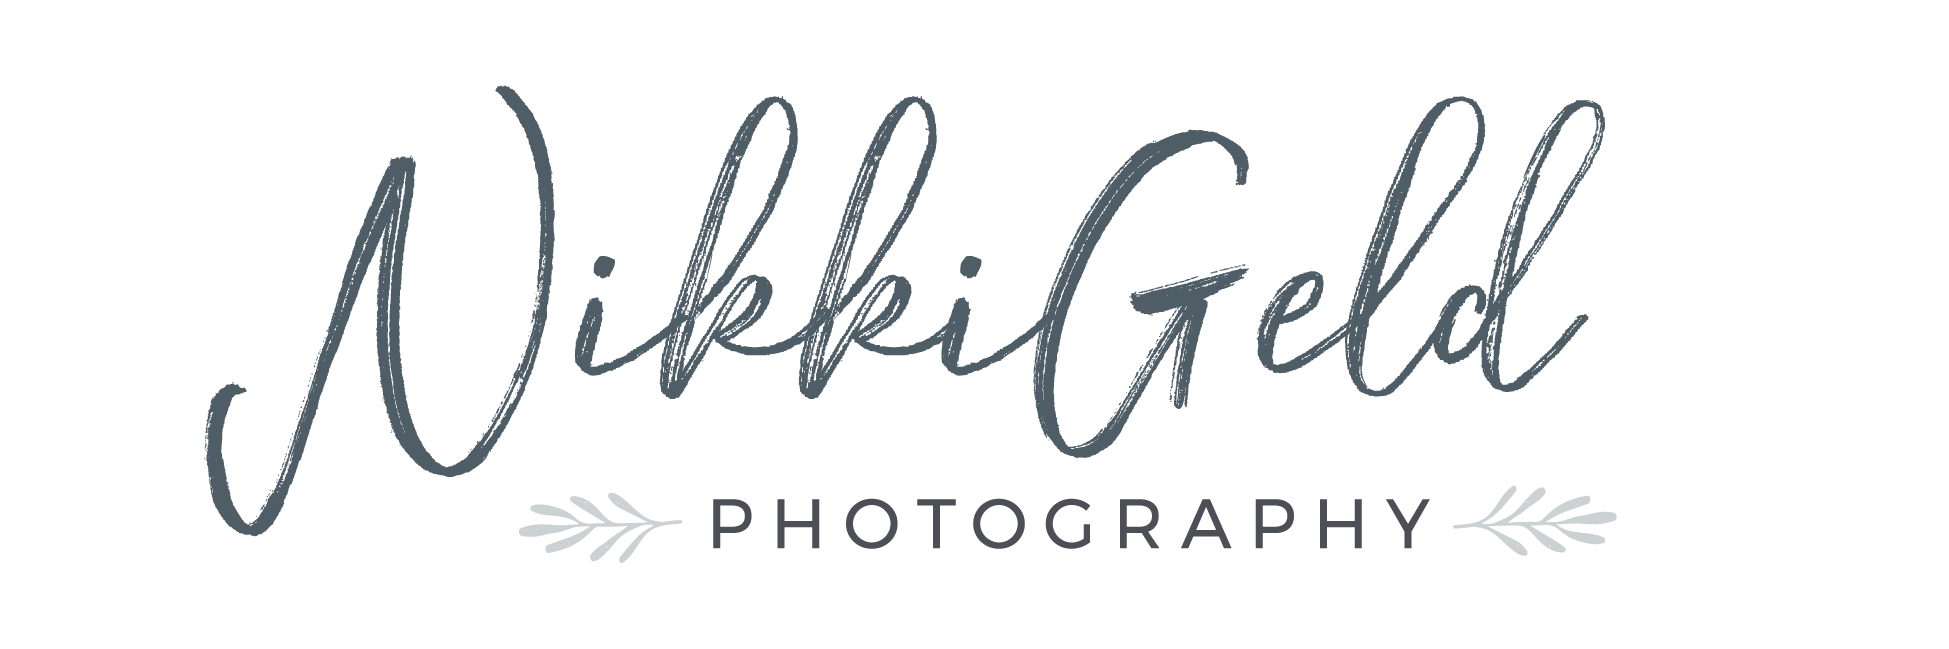 Nikki Geld Photography